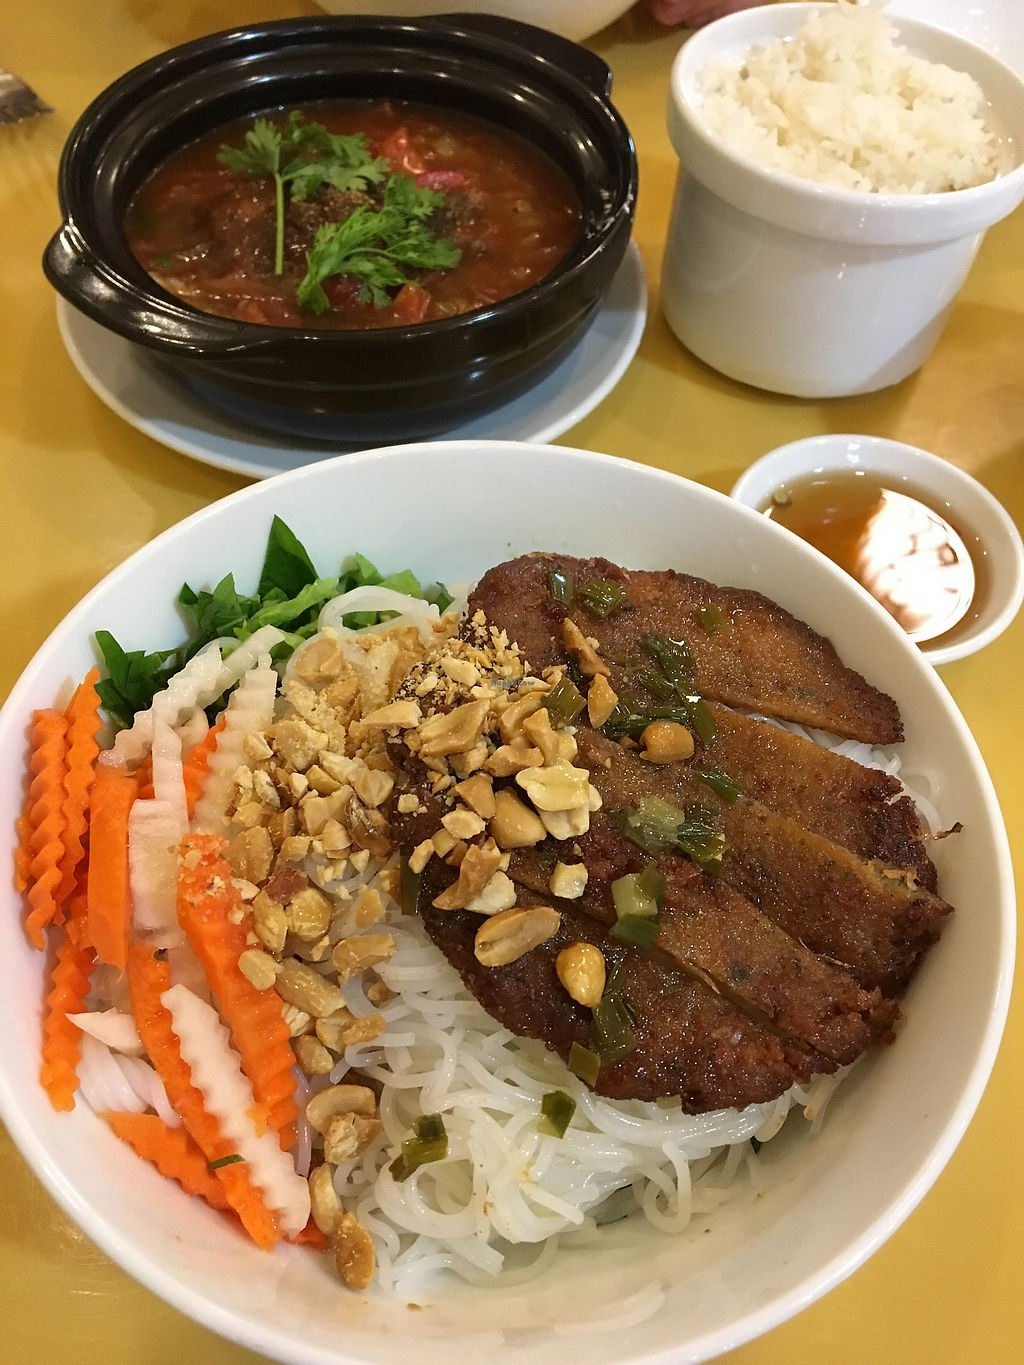 """Photo of Loving Hut Thai Duong  by <a href=""""/members/profile/Theunforbiddenapple"""">Theunforbiddenapple</a> <br/>Pho and vegan fish with tomato <br/> January 26, 2018  - <a href='/contact/abuse/image/89077/351078'>Report</a>"""